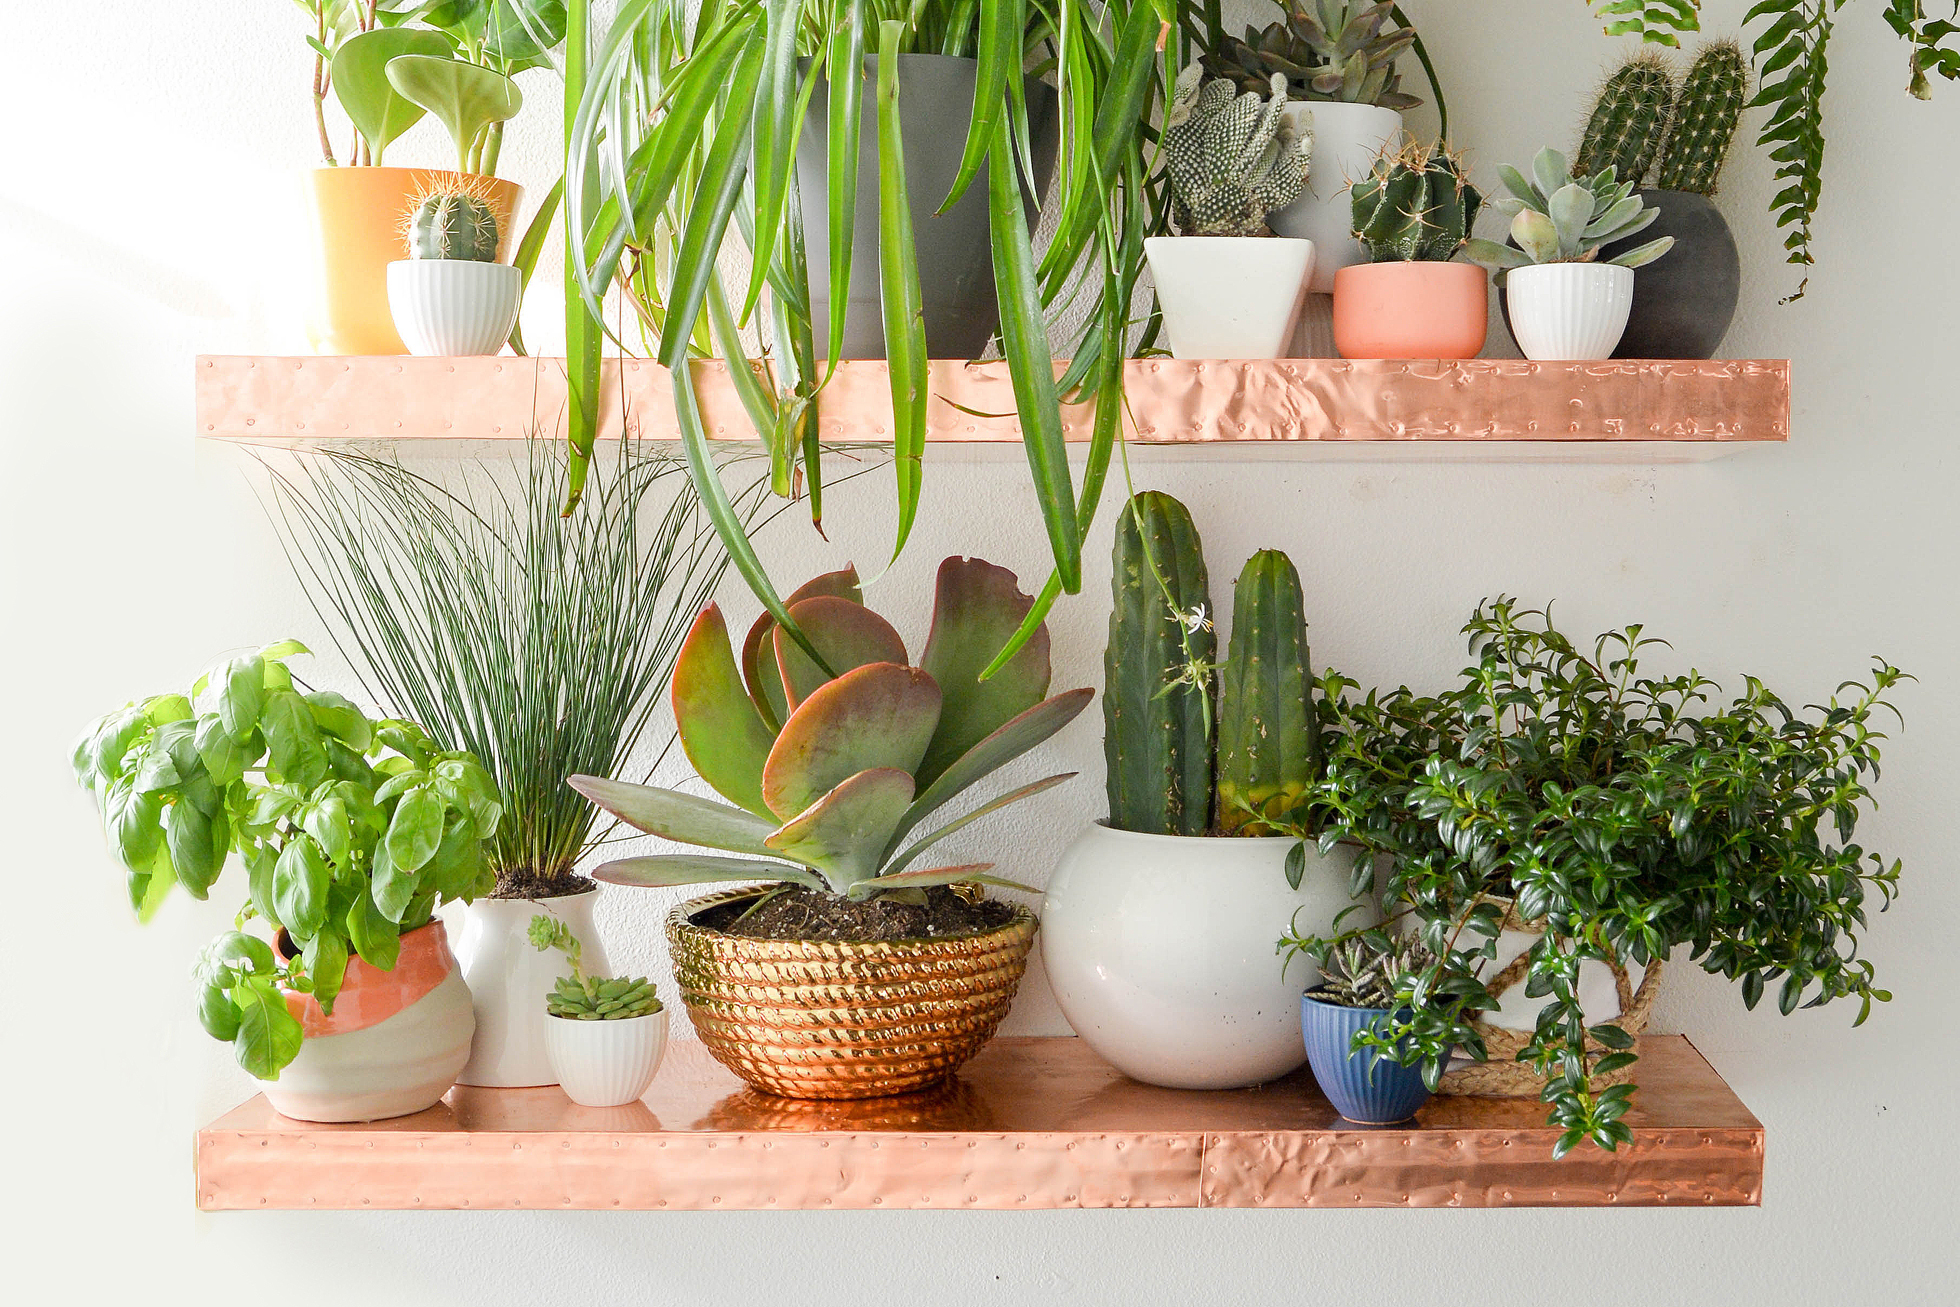 Live green plants on wooden floating shelves